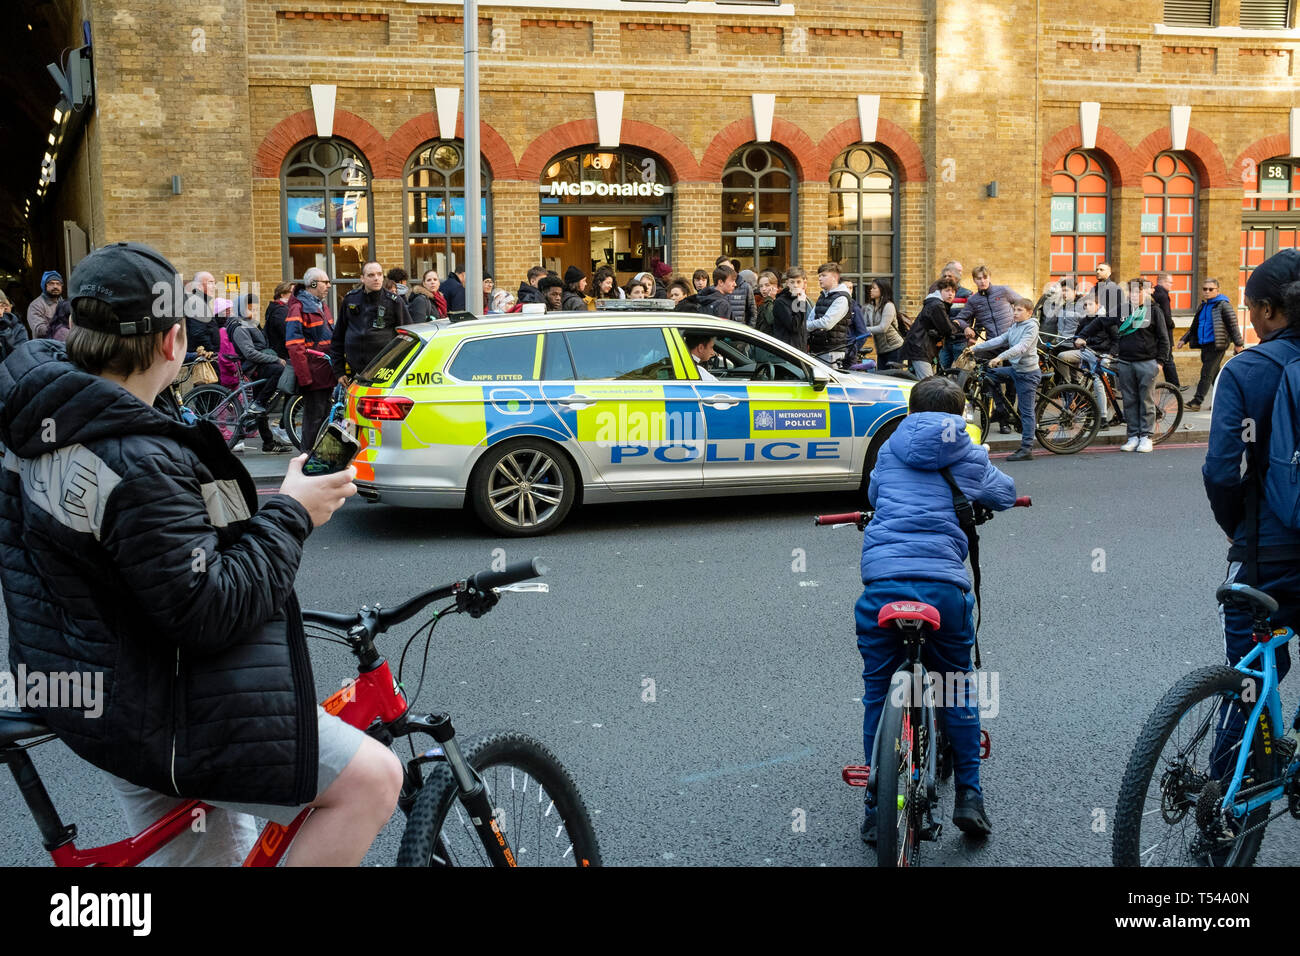 Metropolitan police officers attend incident with large number of youths, London, UK. - Stock Image